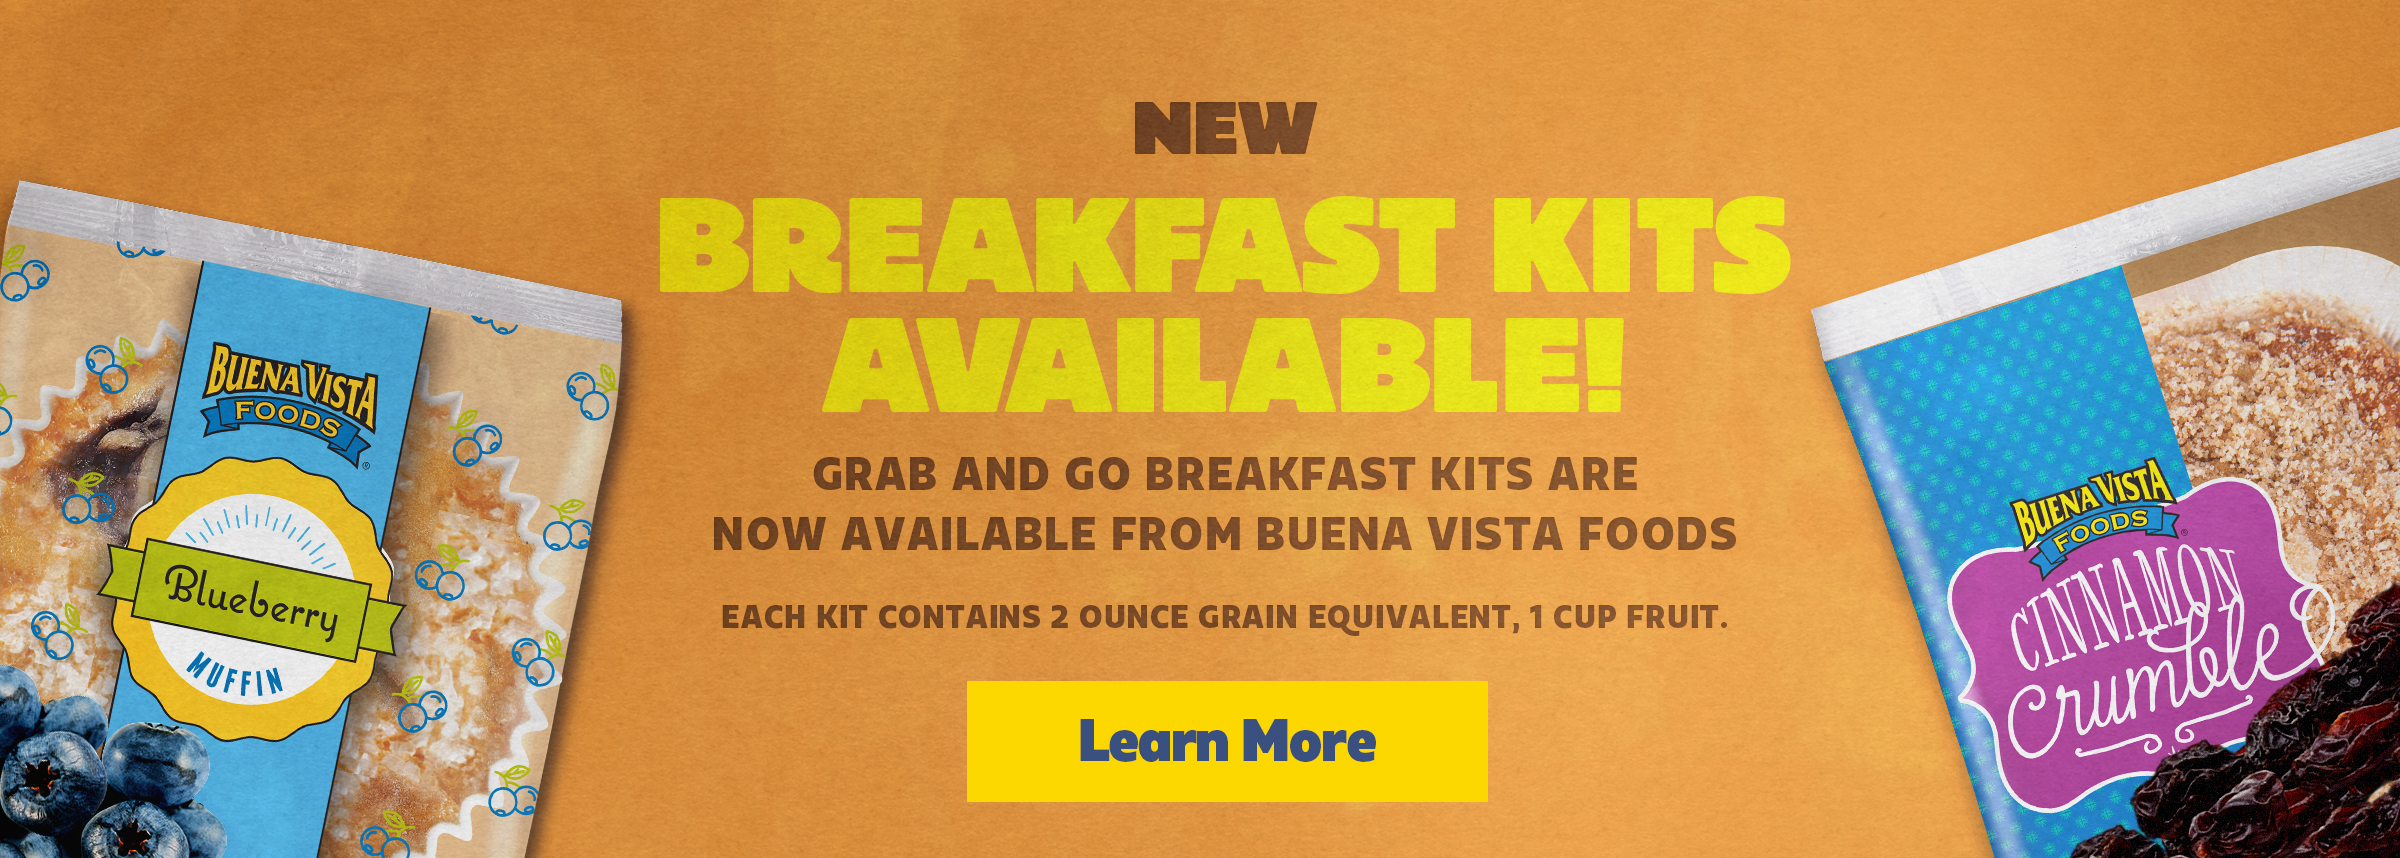 breakfast kits